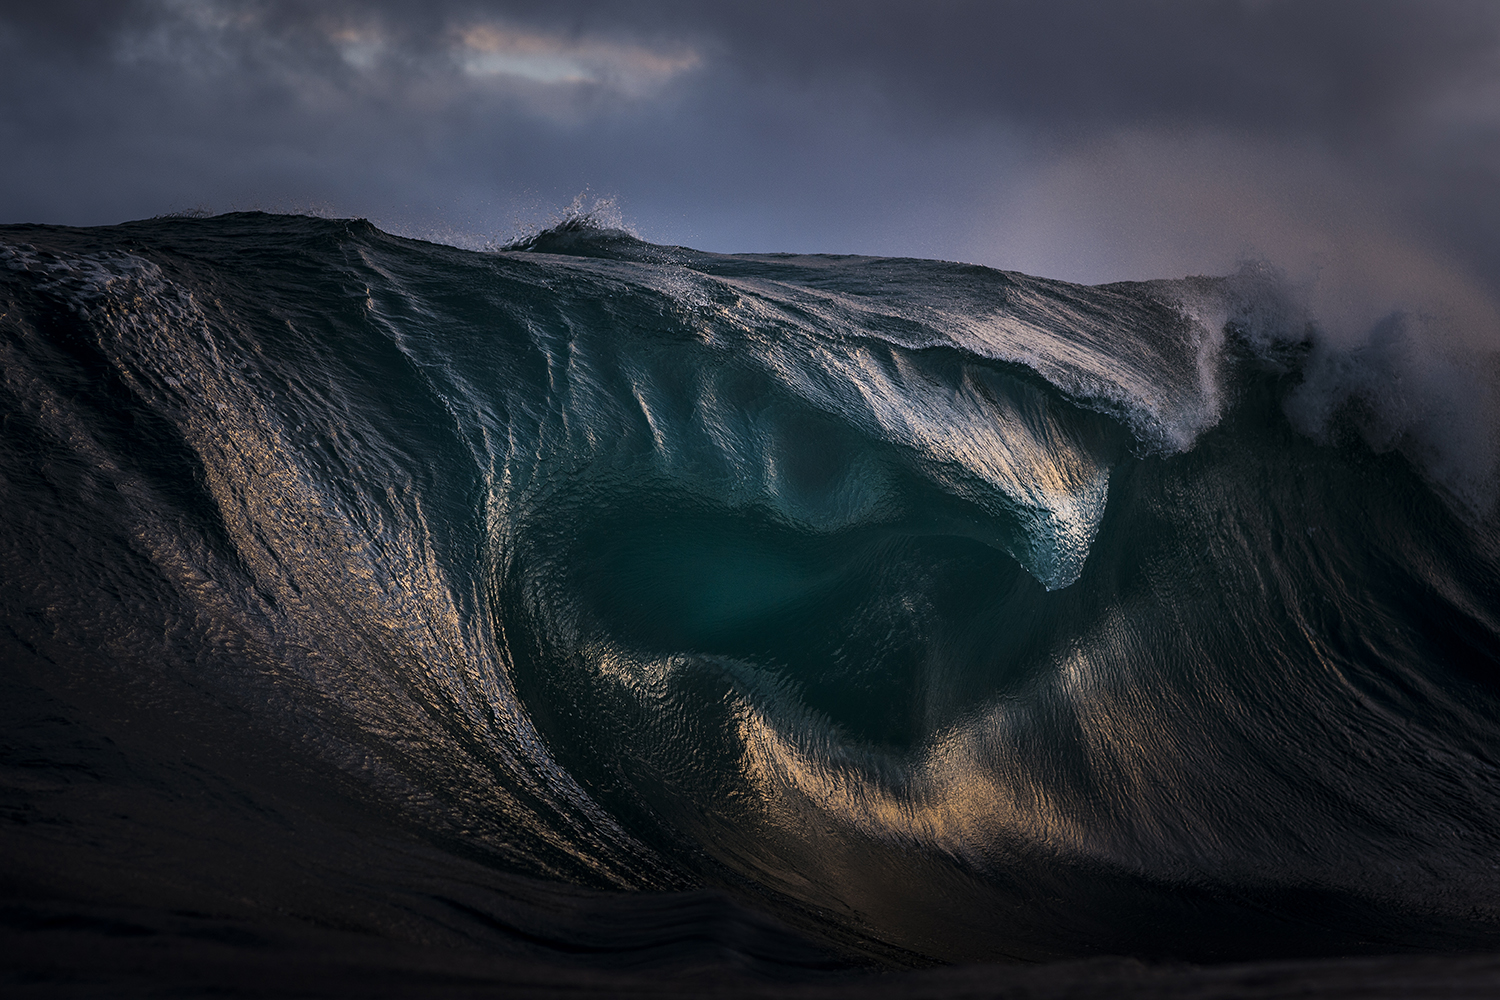 A breaking wave in New South Wales, Australia, by Ray Collins [1500x1000]